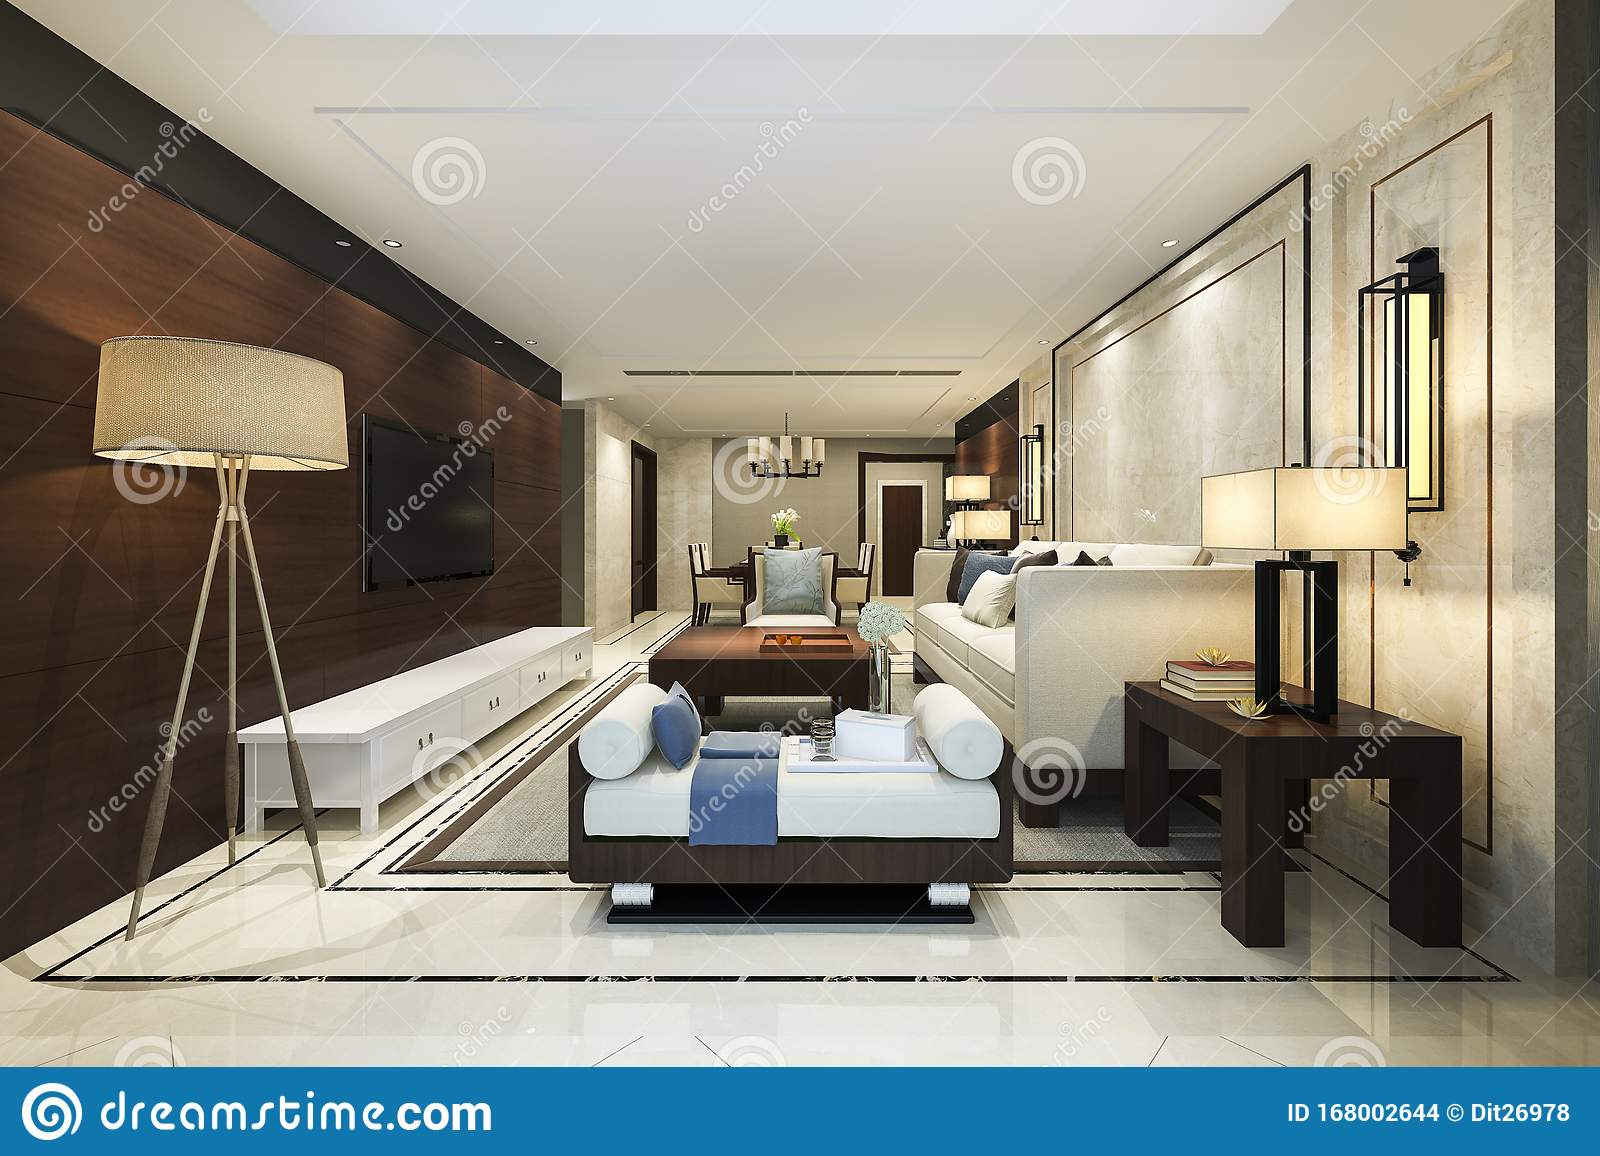 3d Rendering Modern Dining Room And Living Room With Luxury Chinese Decor Stock Illustration Illustration Of Design Contemporary 168002644